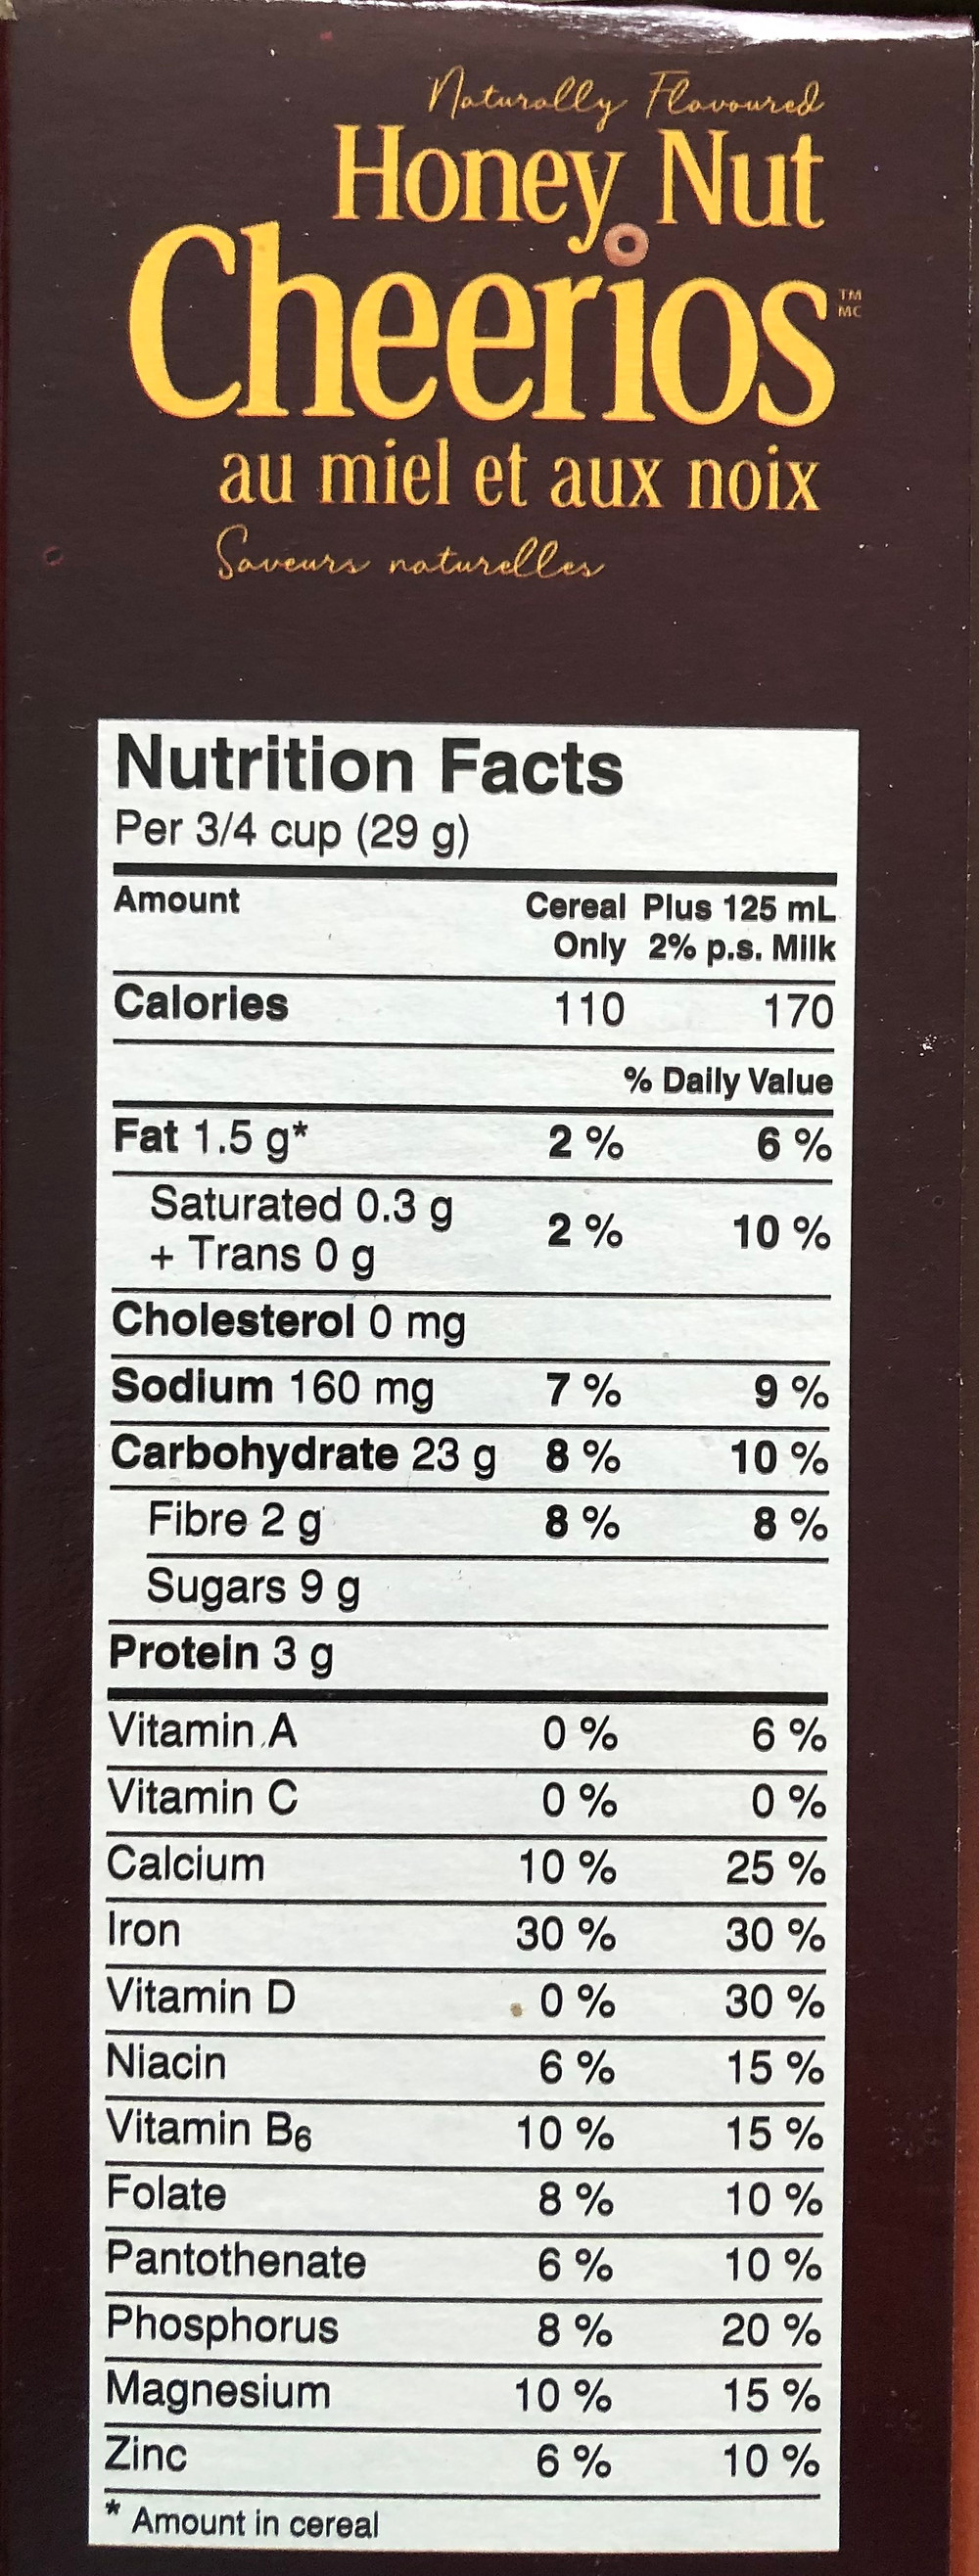 The picture is the Nutrition Facts table of Honey Nut Cheerios.